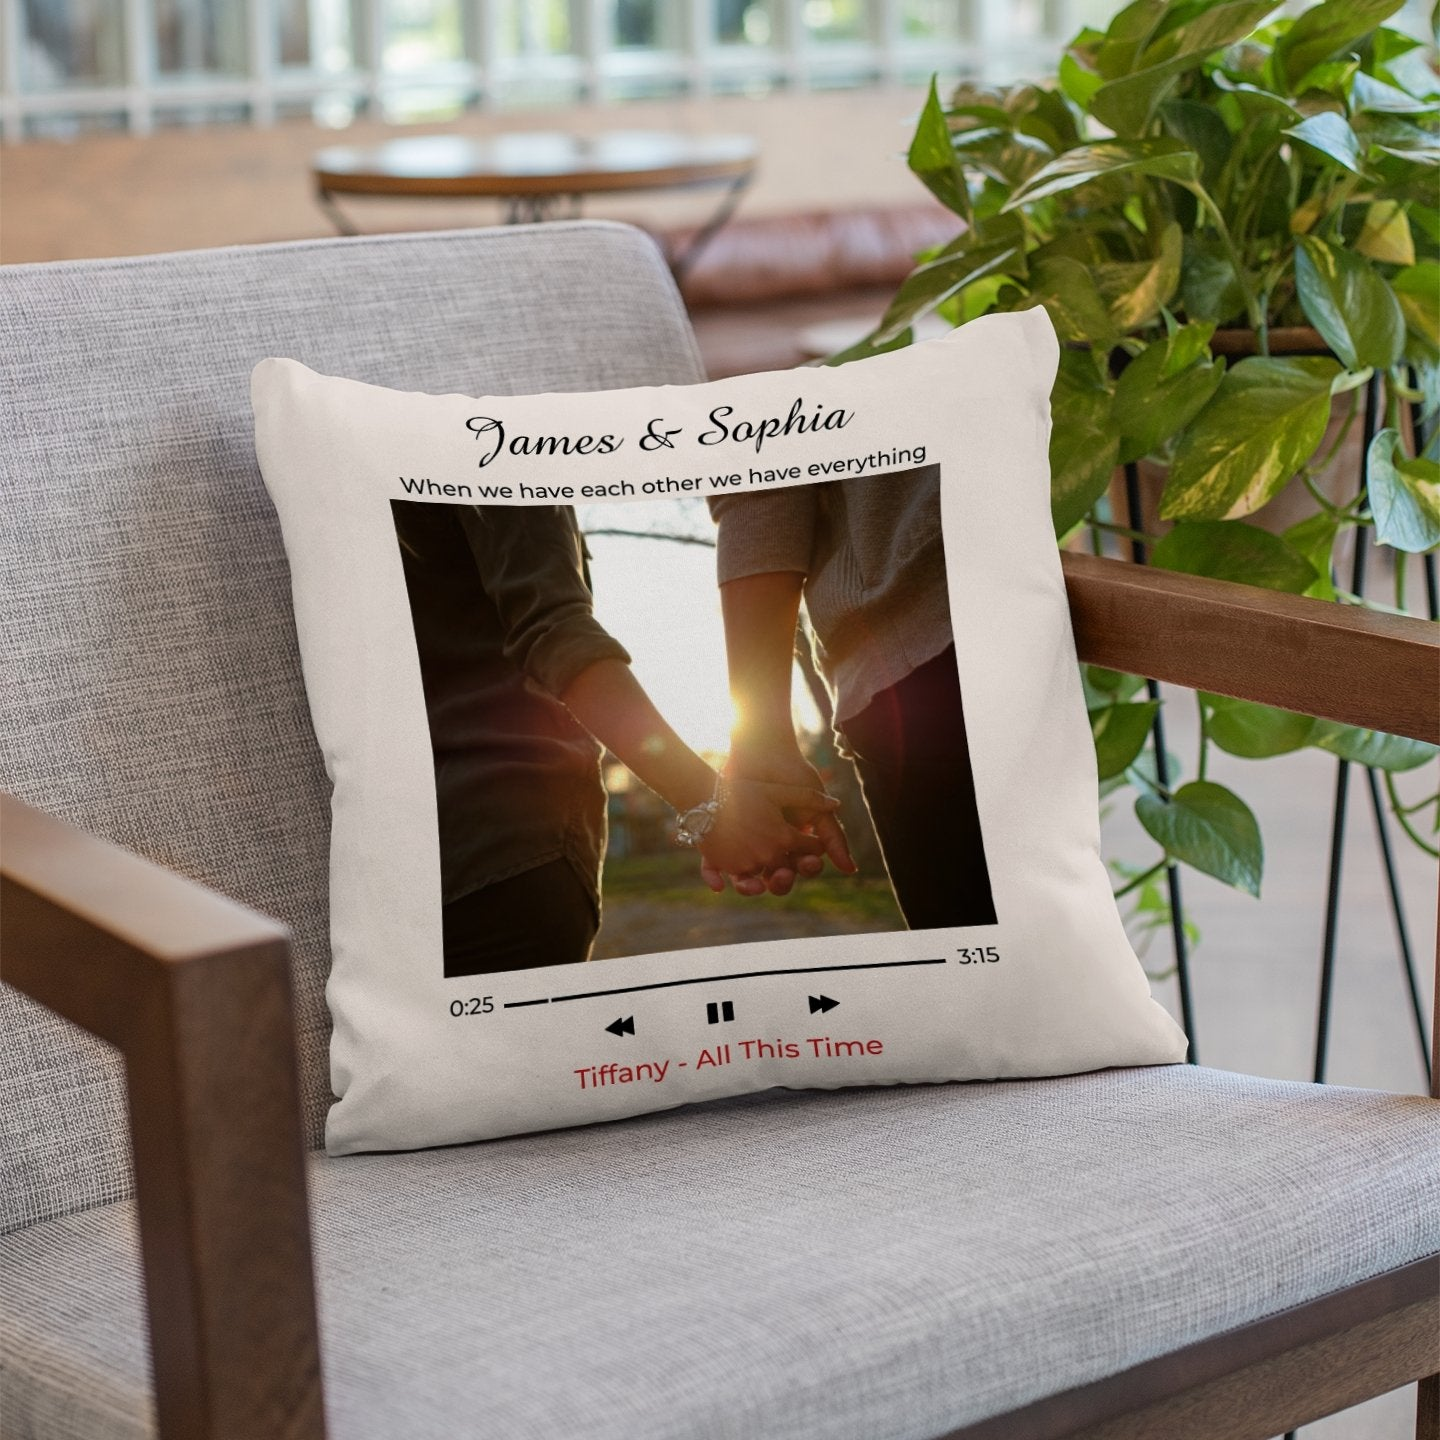 This pillow with photo, song title & artist name on it is the perfect cozy Valentine's Day for him. A music themed gift he will cherish for years to come. Easy to customize and enough to melt his heart. Design your romantic anniversary gift for husband today!